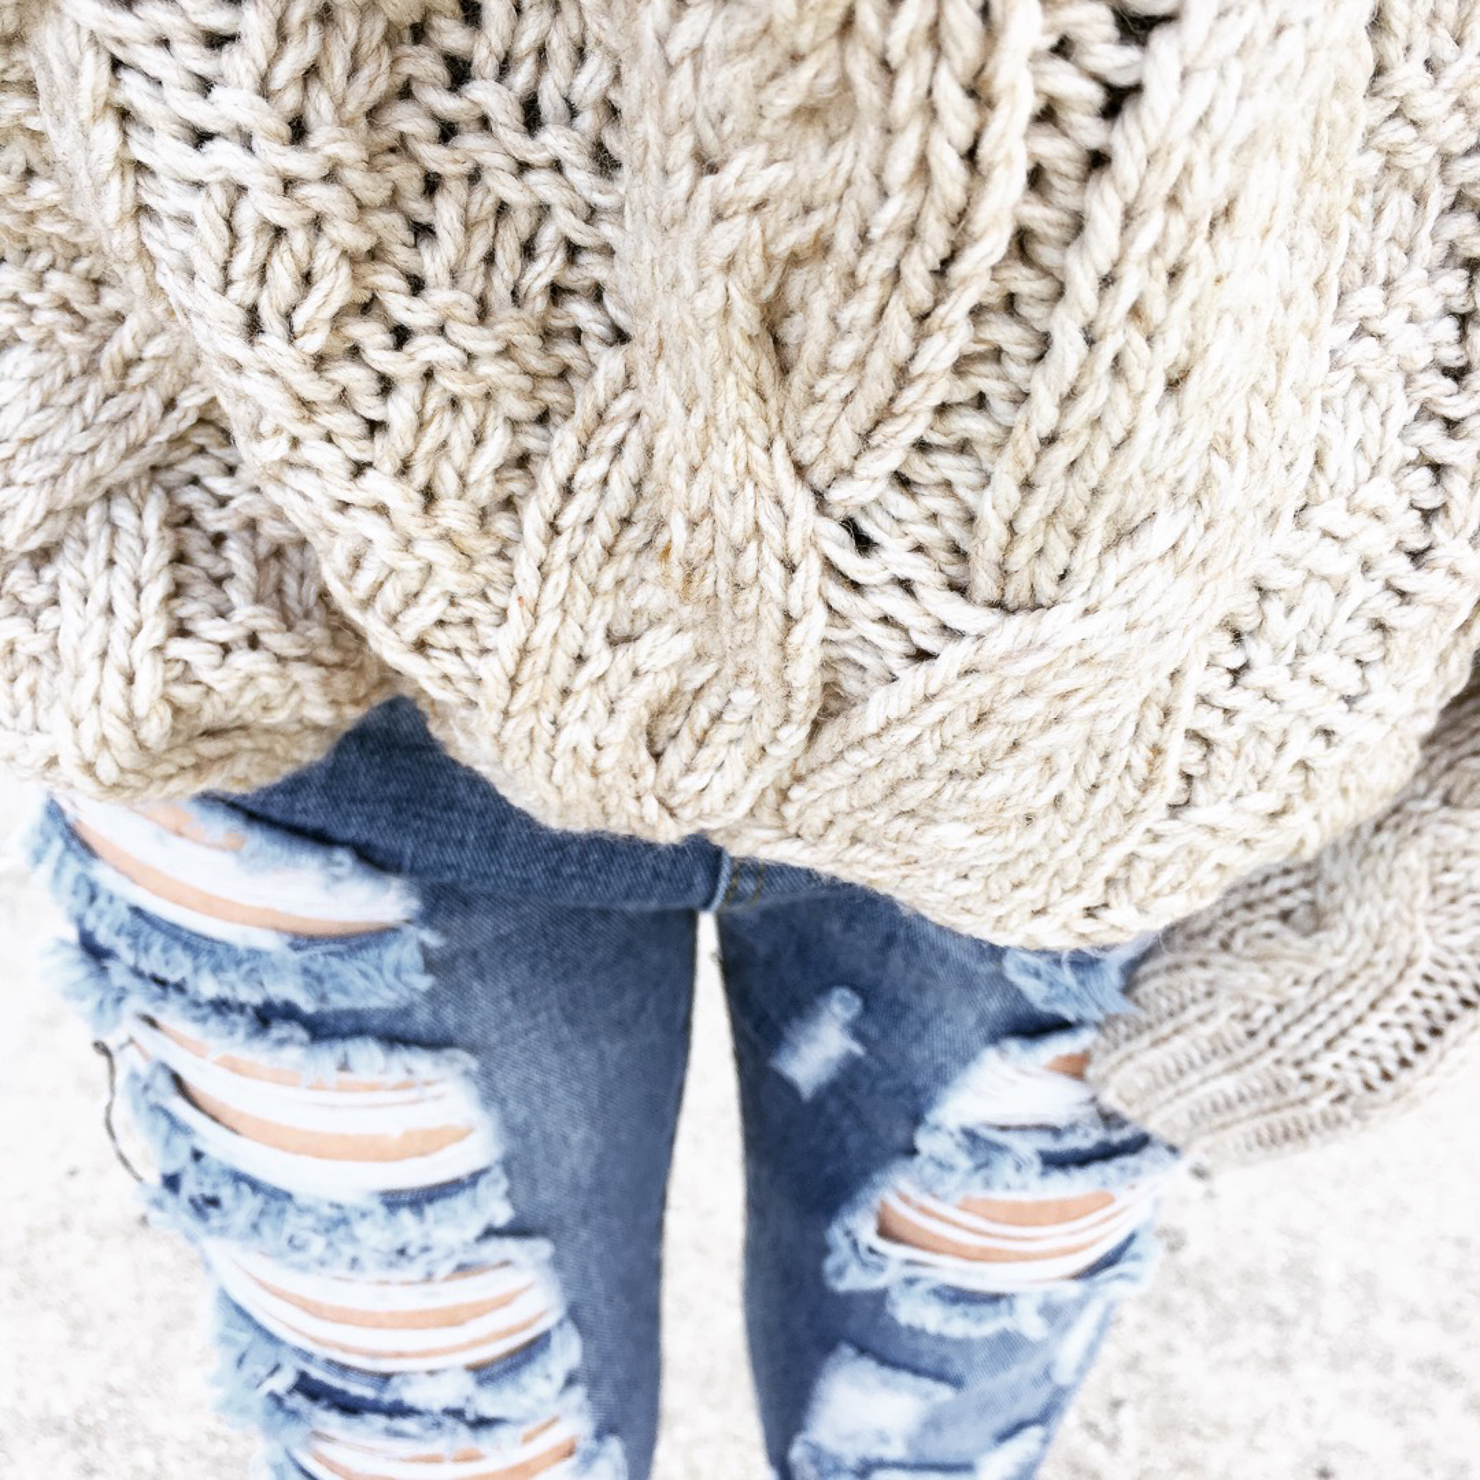 f339d6512e309 cozy-fall-outfit-hm-oversized-cable-knit-sweater-distressed-jeans ...